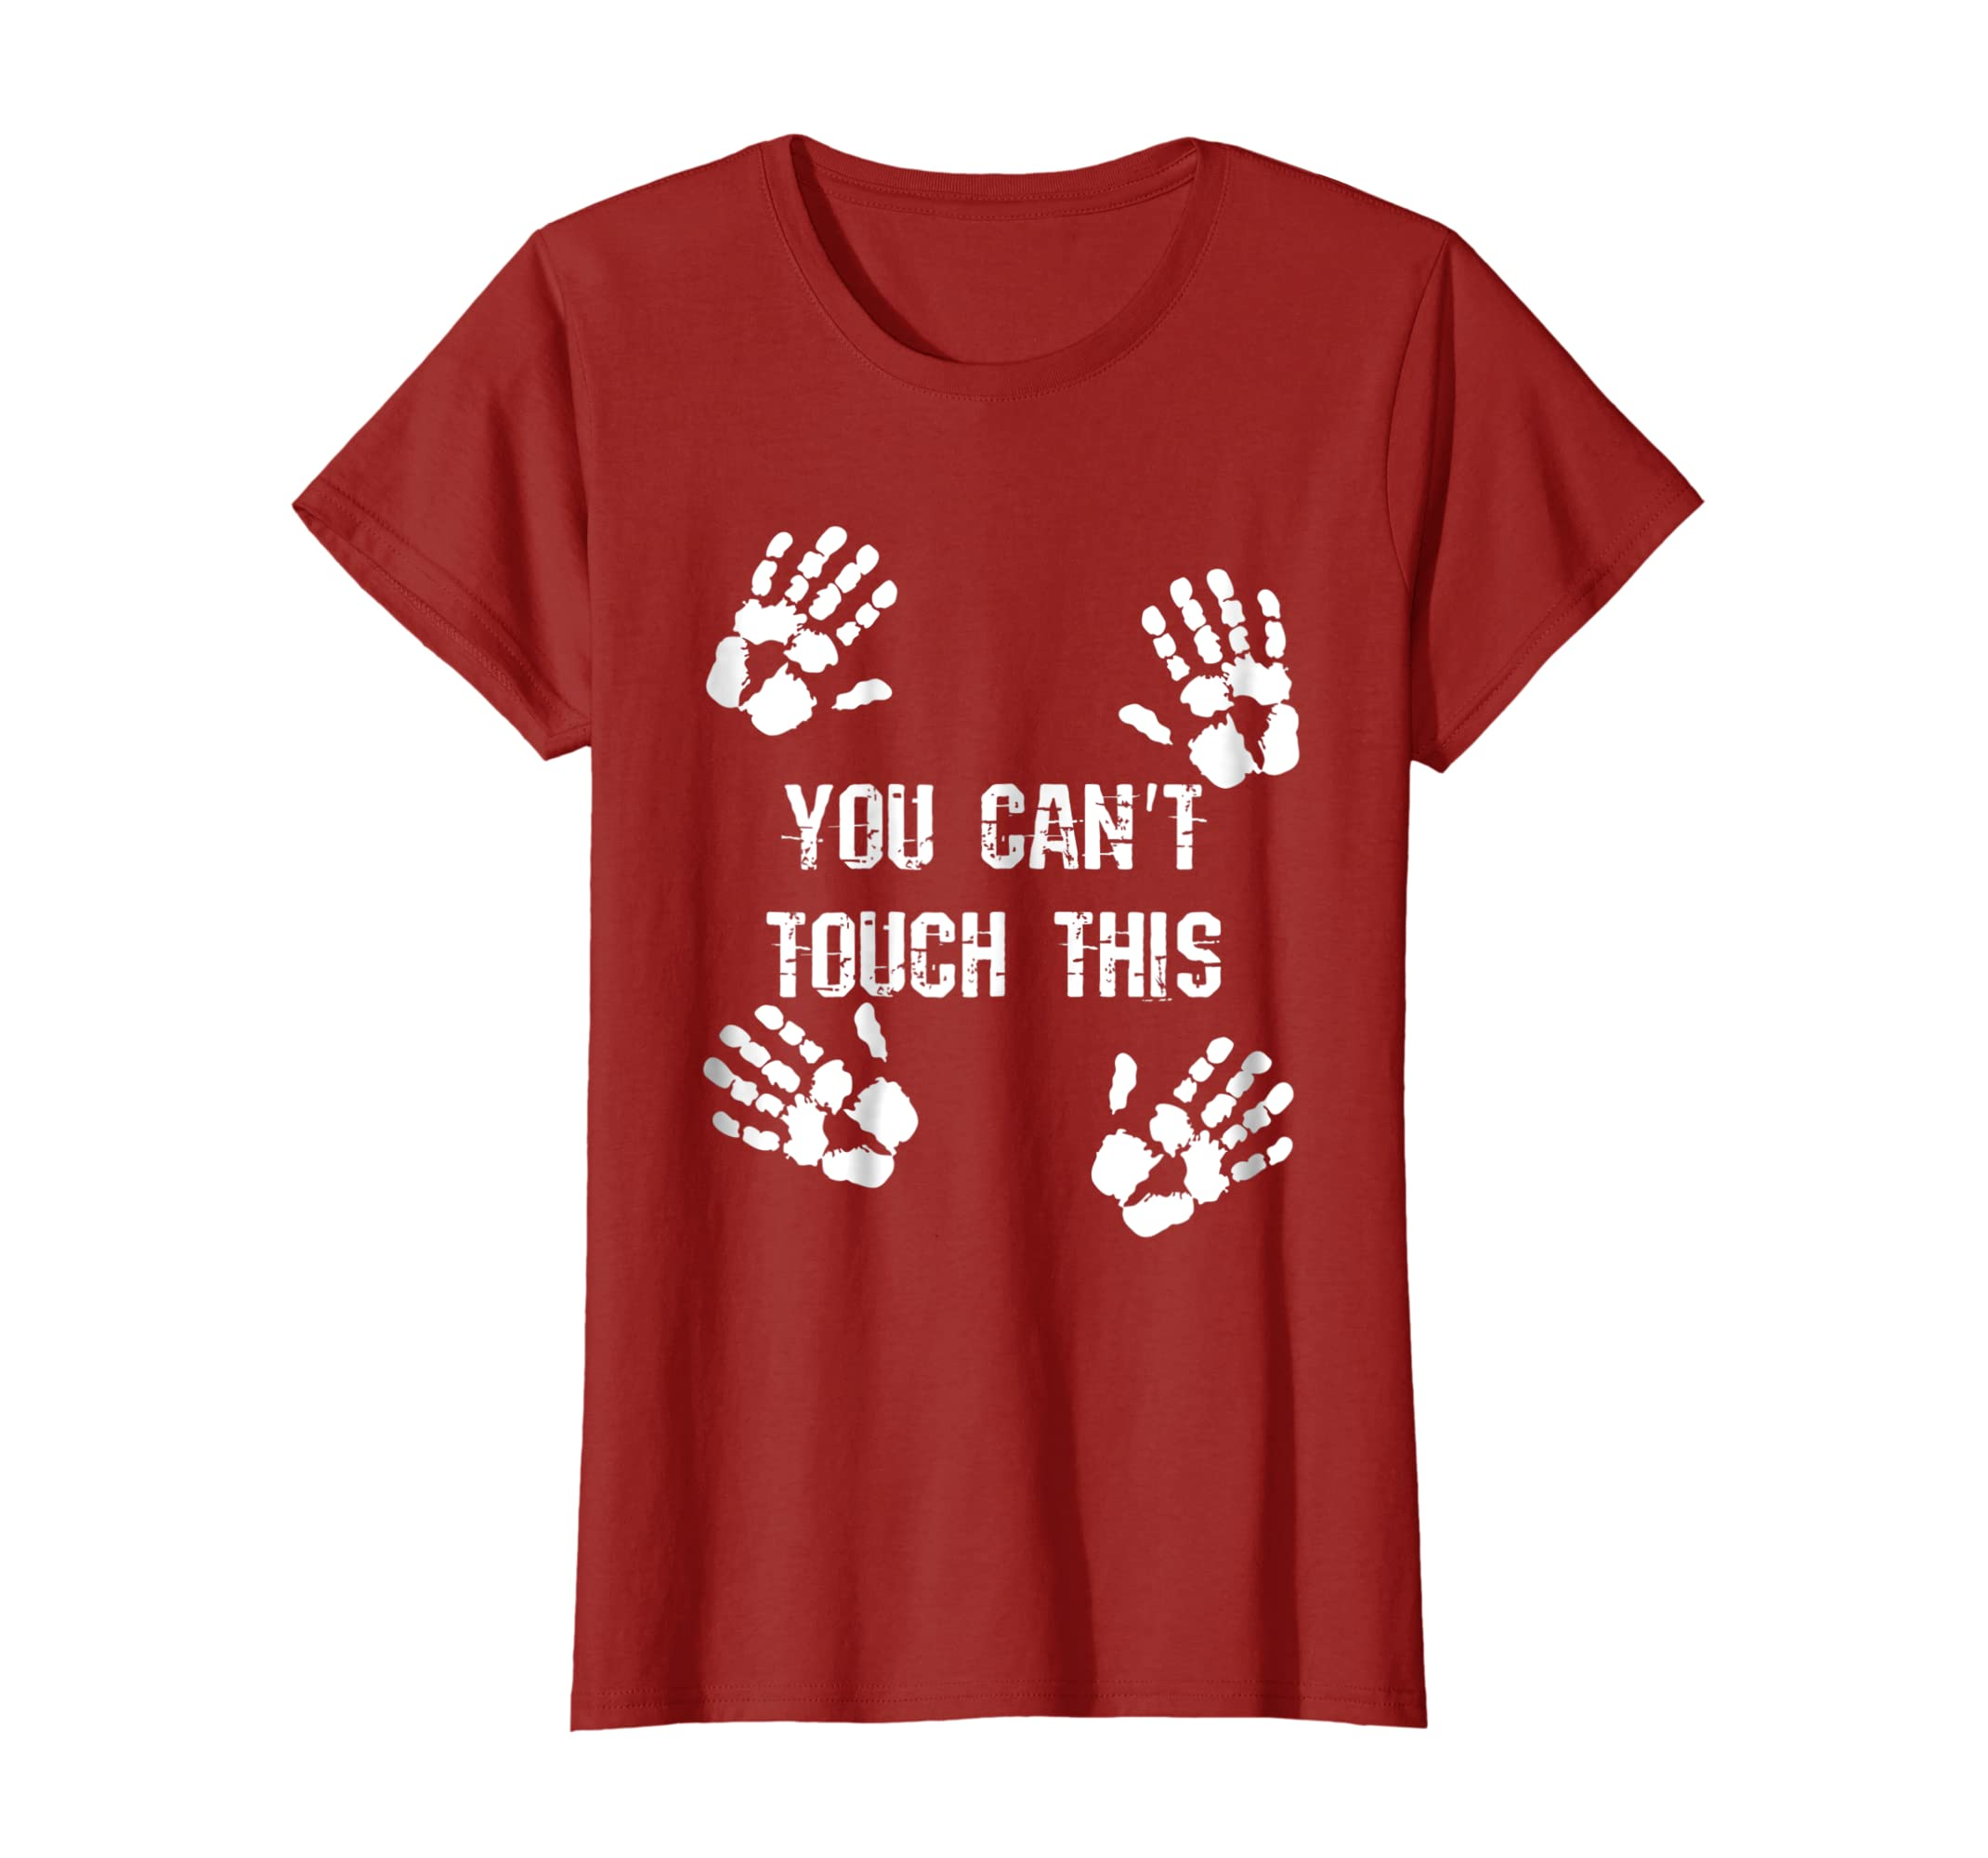 You Cant Touch This T Shirt Multiple Hands Against Violence